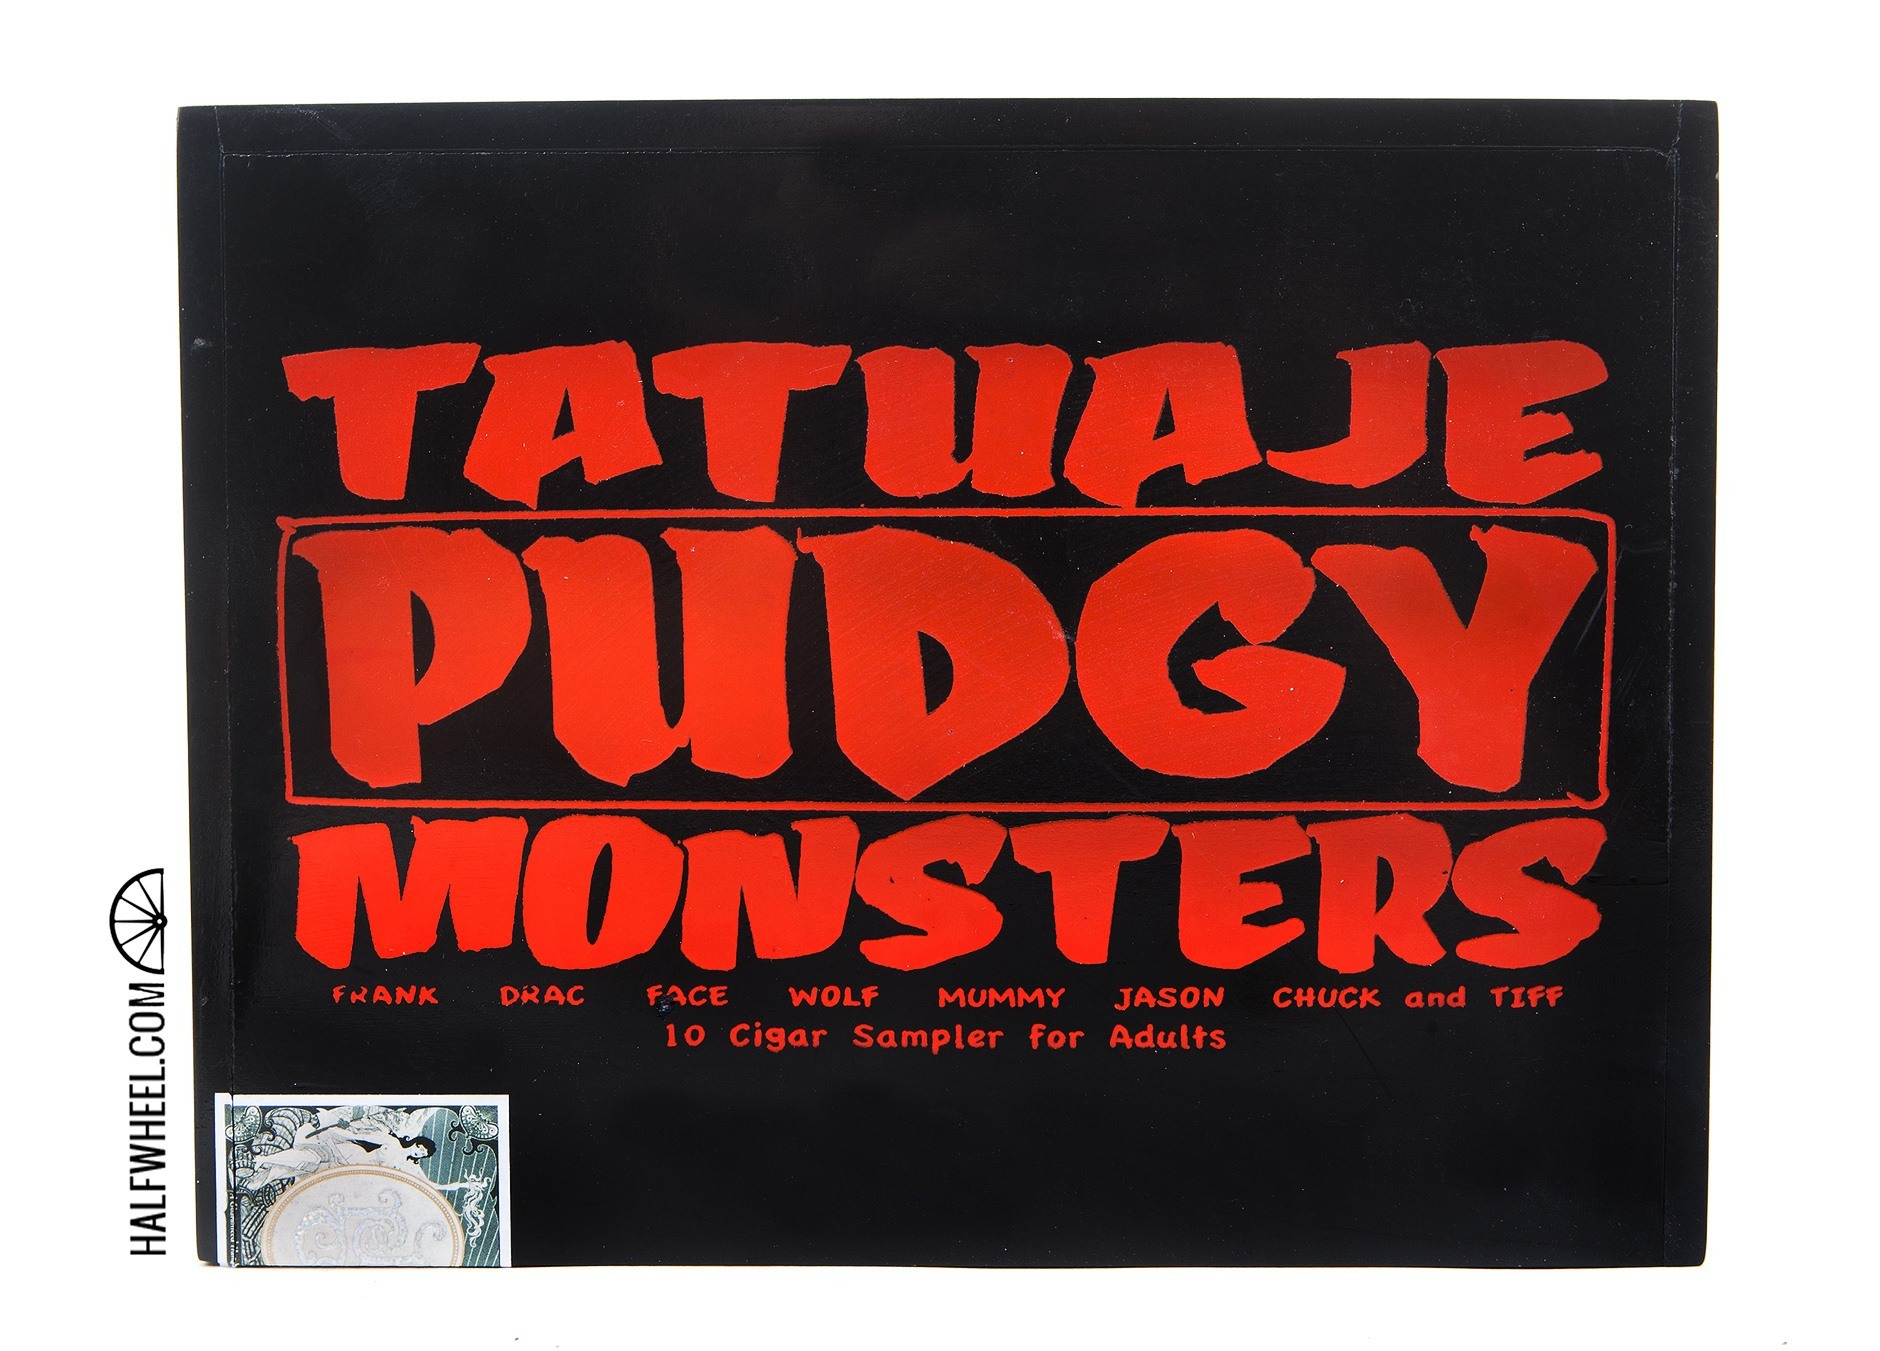 Tatuaje Pudgy Monster Box 1